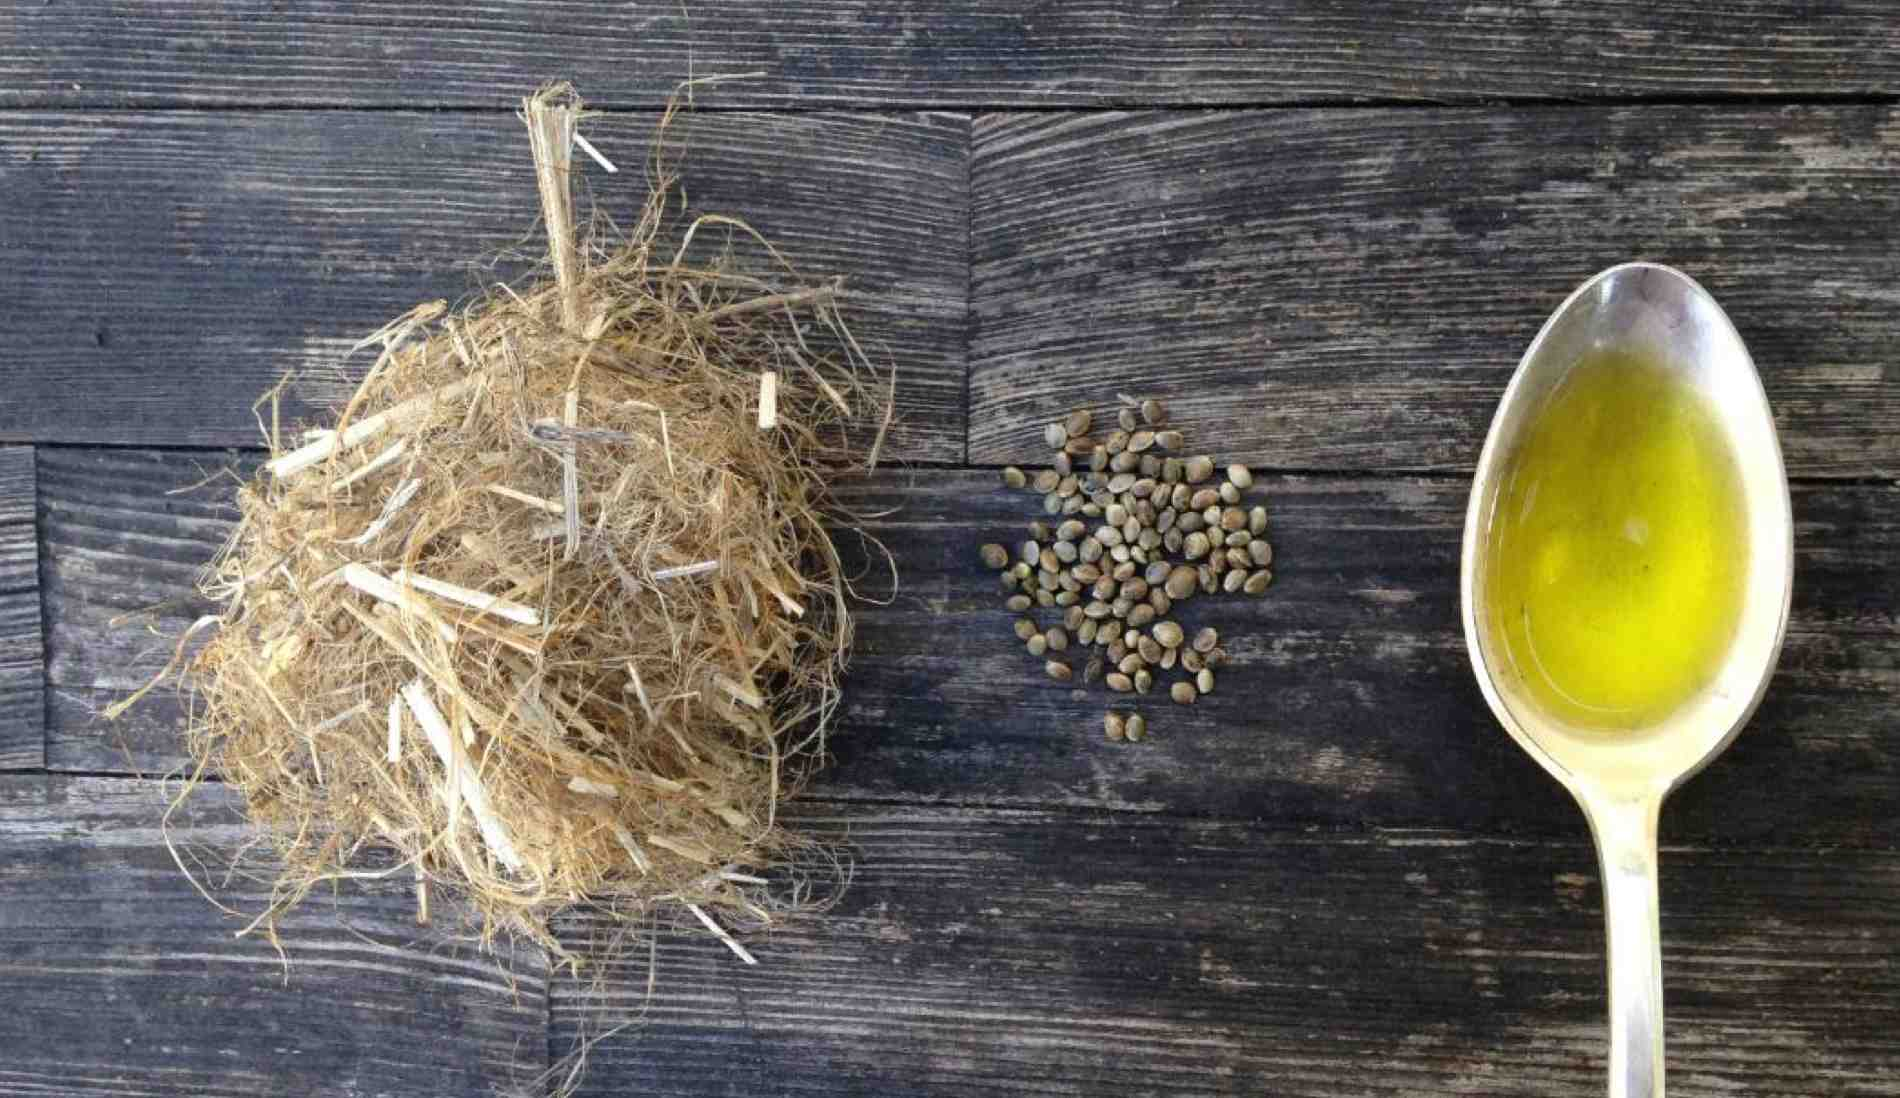 Hemp for fiber, seed and oil